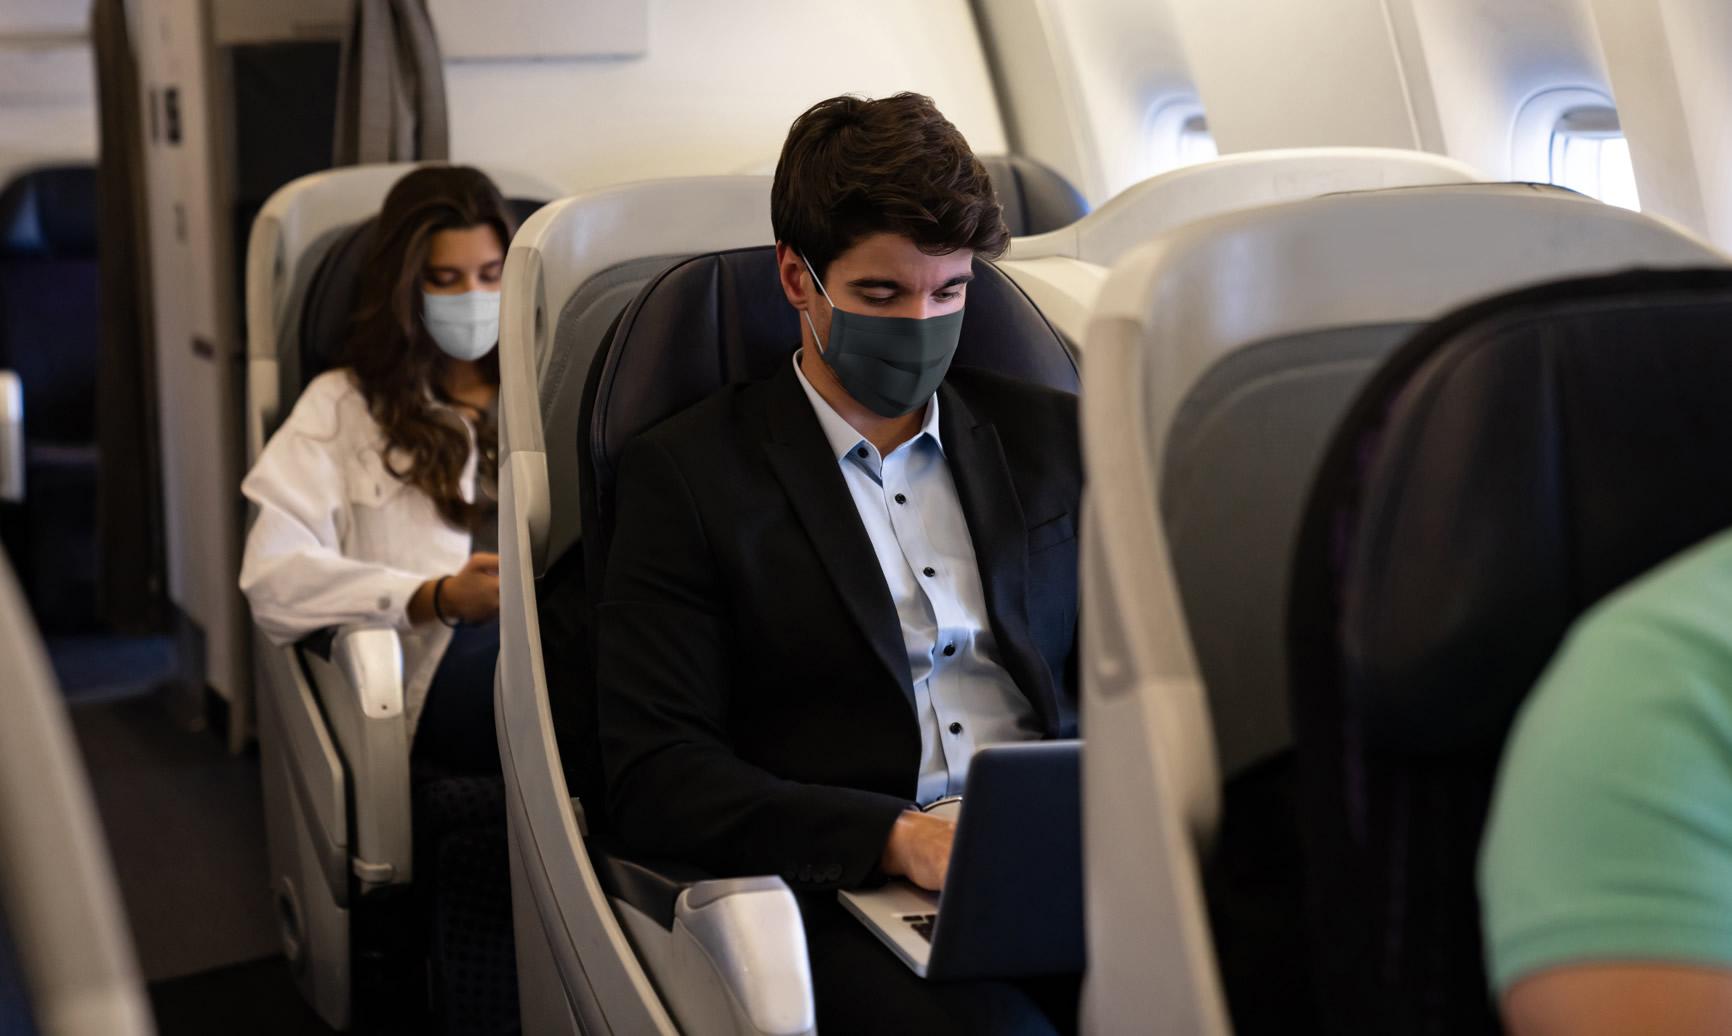 Airlines Are Actually Reducing Potential COVID-19 Exposure by Returning to Pre-pandemic Boarding Methods, Study Suggests